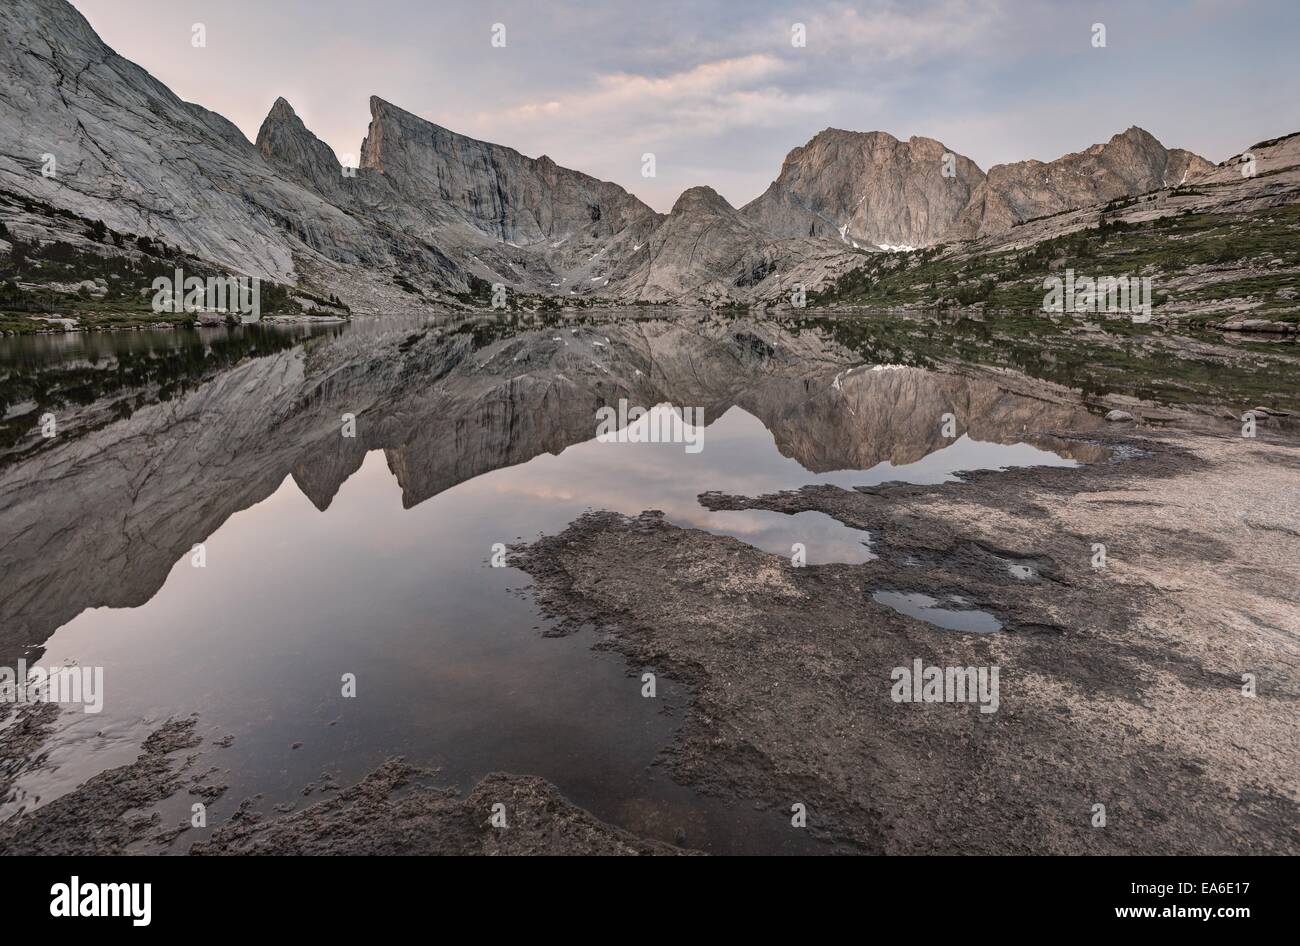 USA, Wyoming, Bridger-Teton National Forest, Deep Lake and East Temple - Stock Image